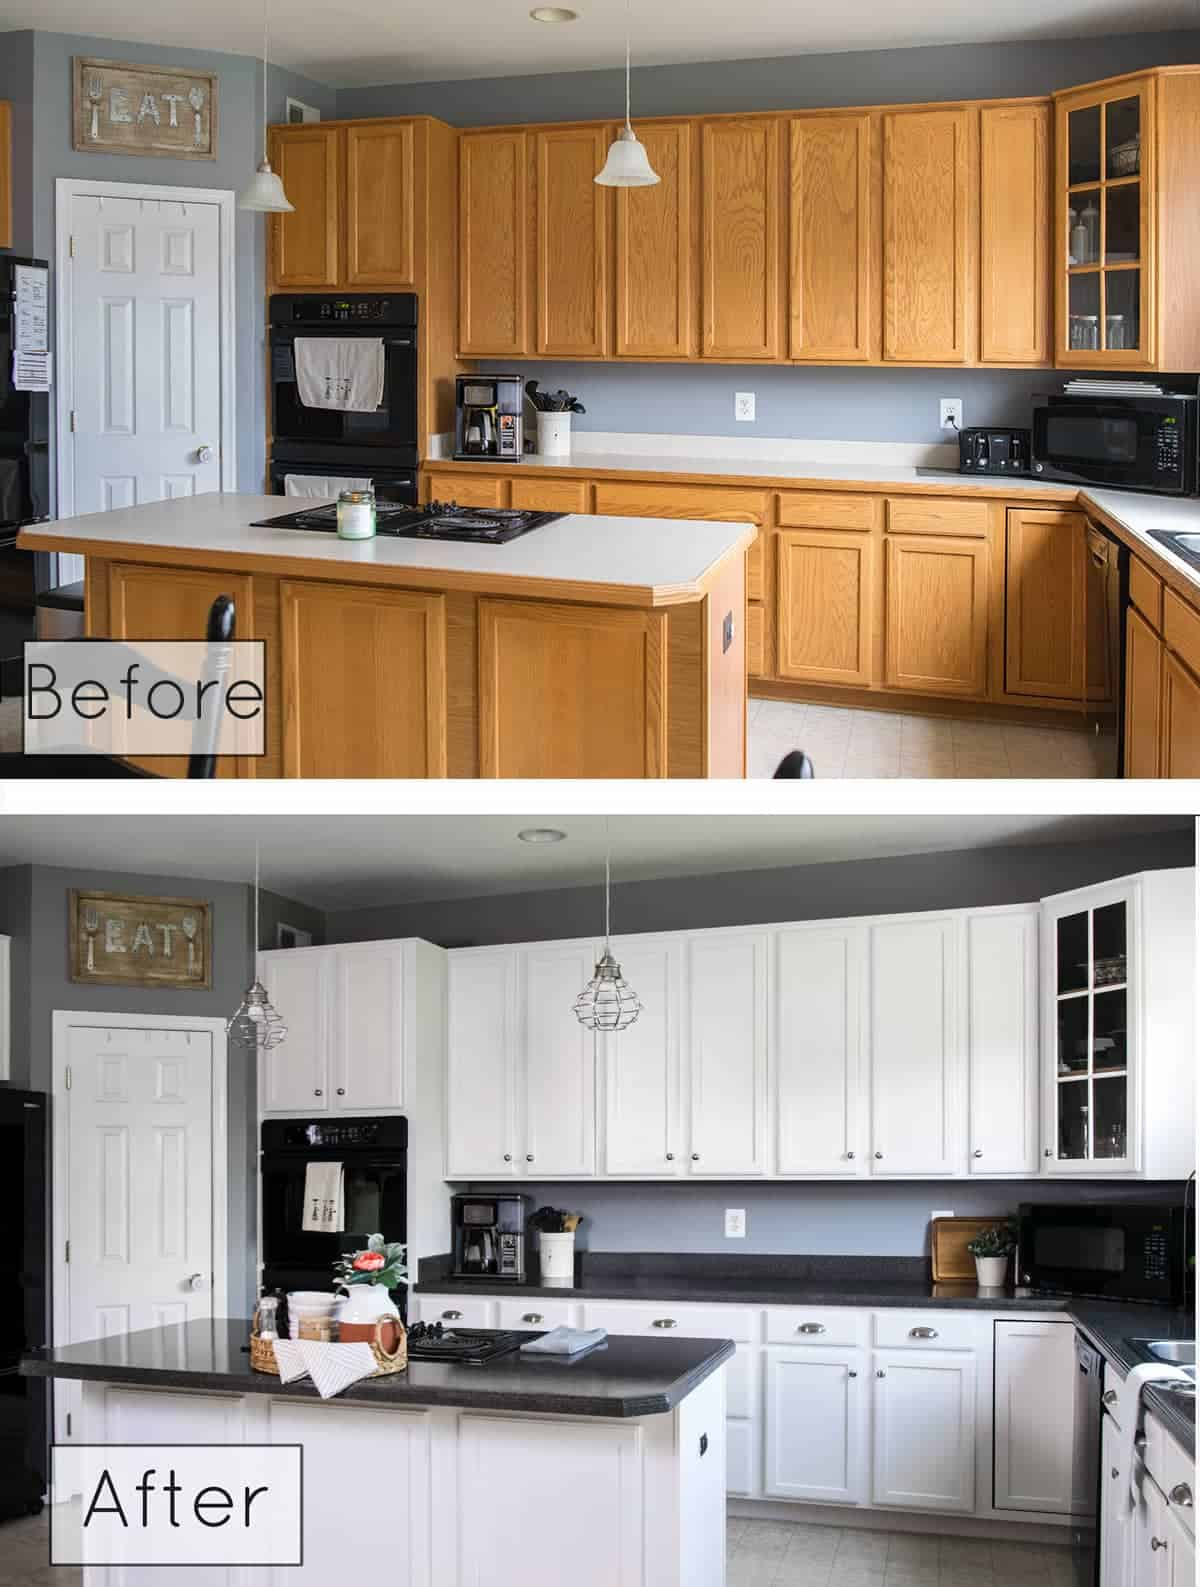 Before and after photo of painted cabinets in kitchen remodel.